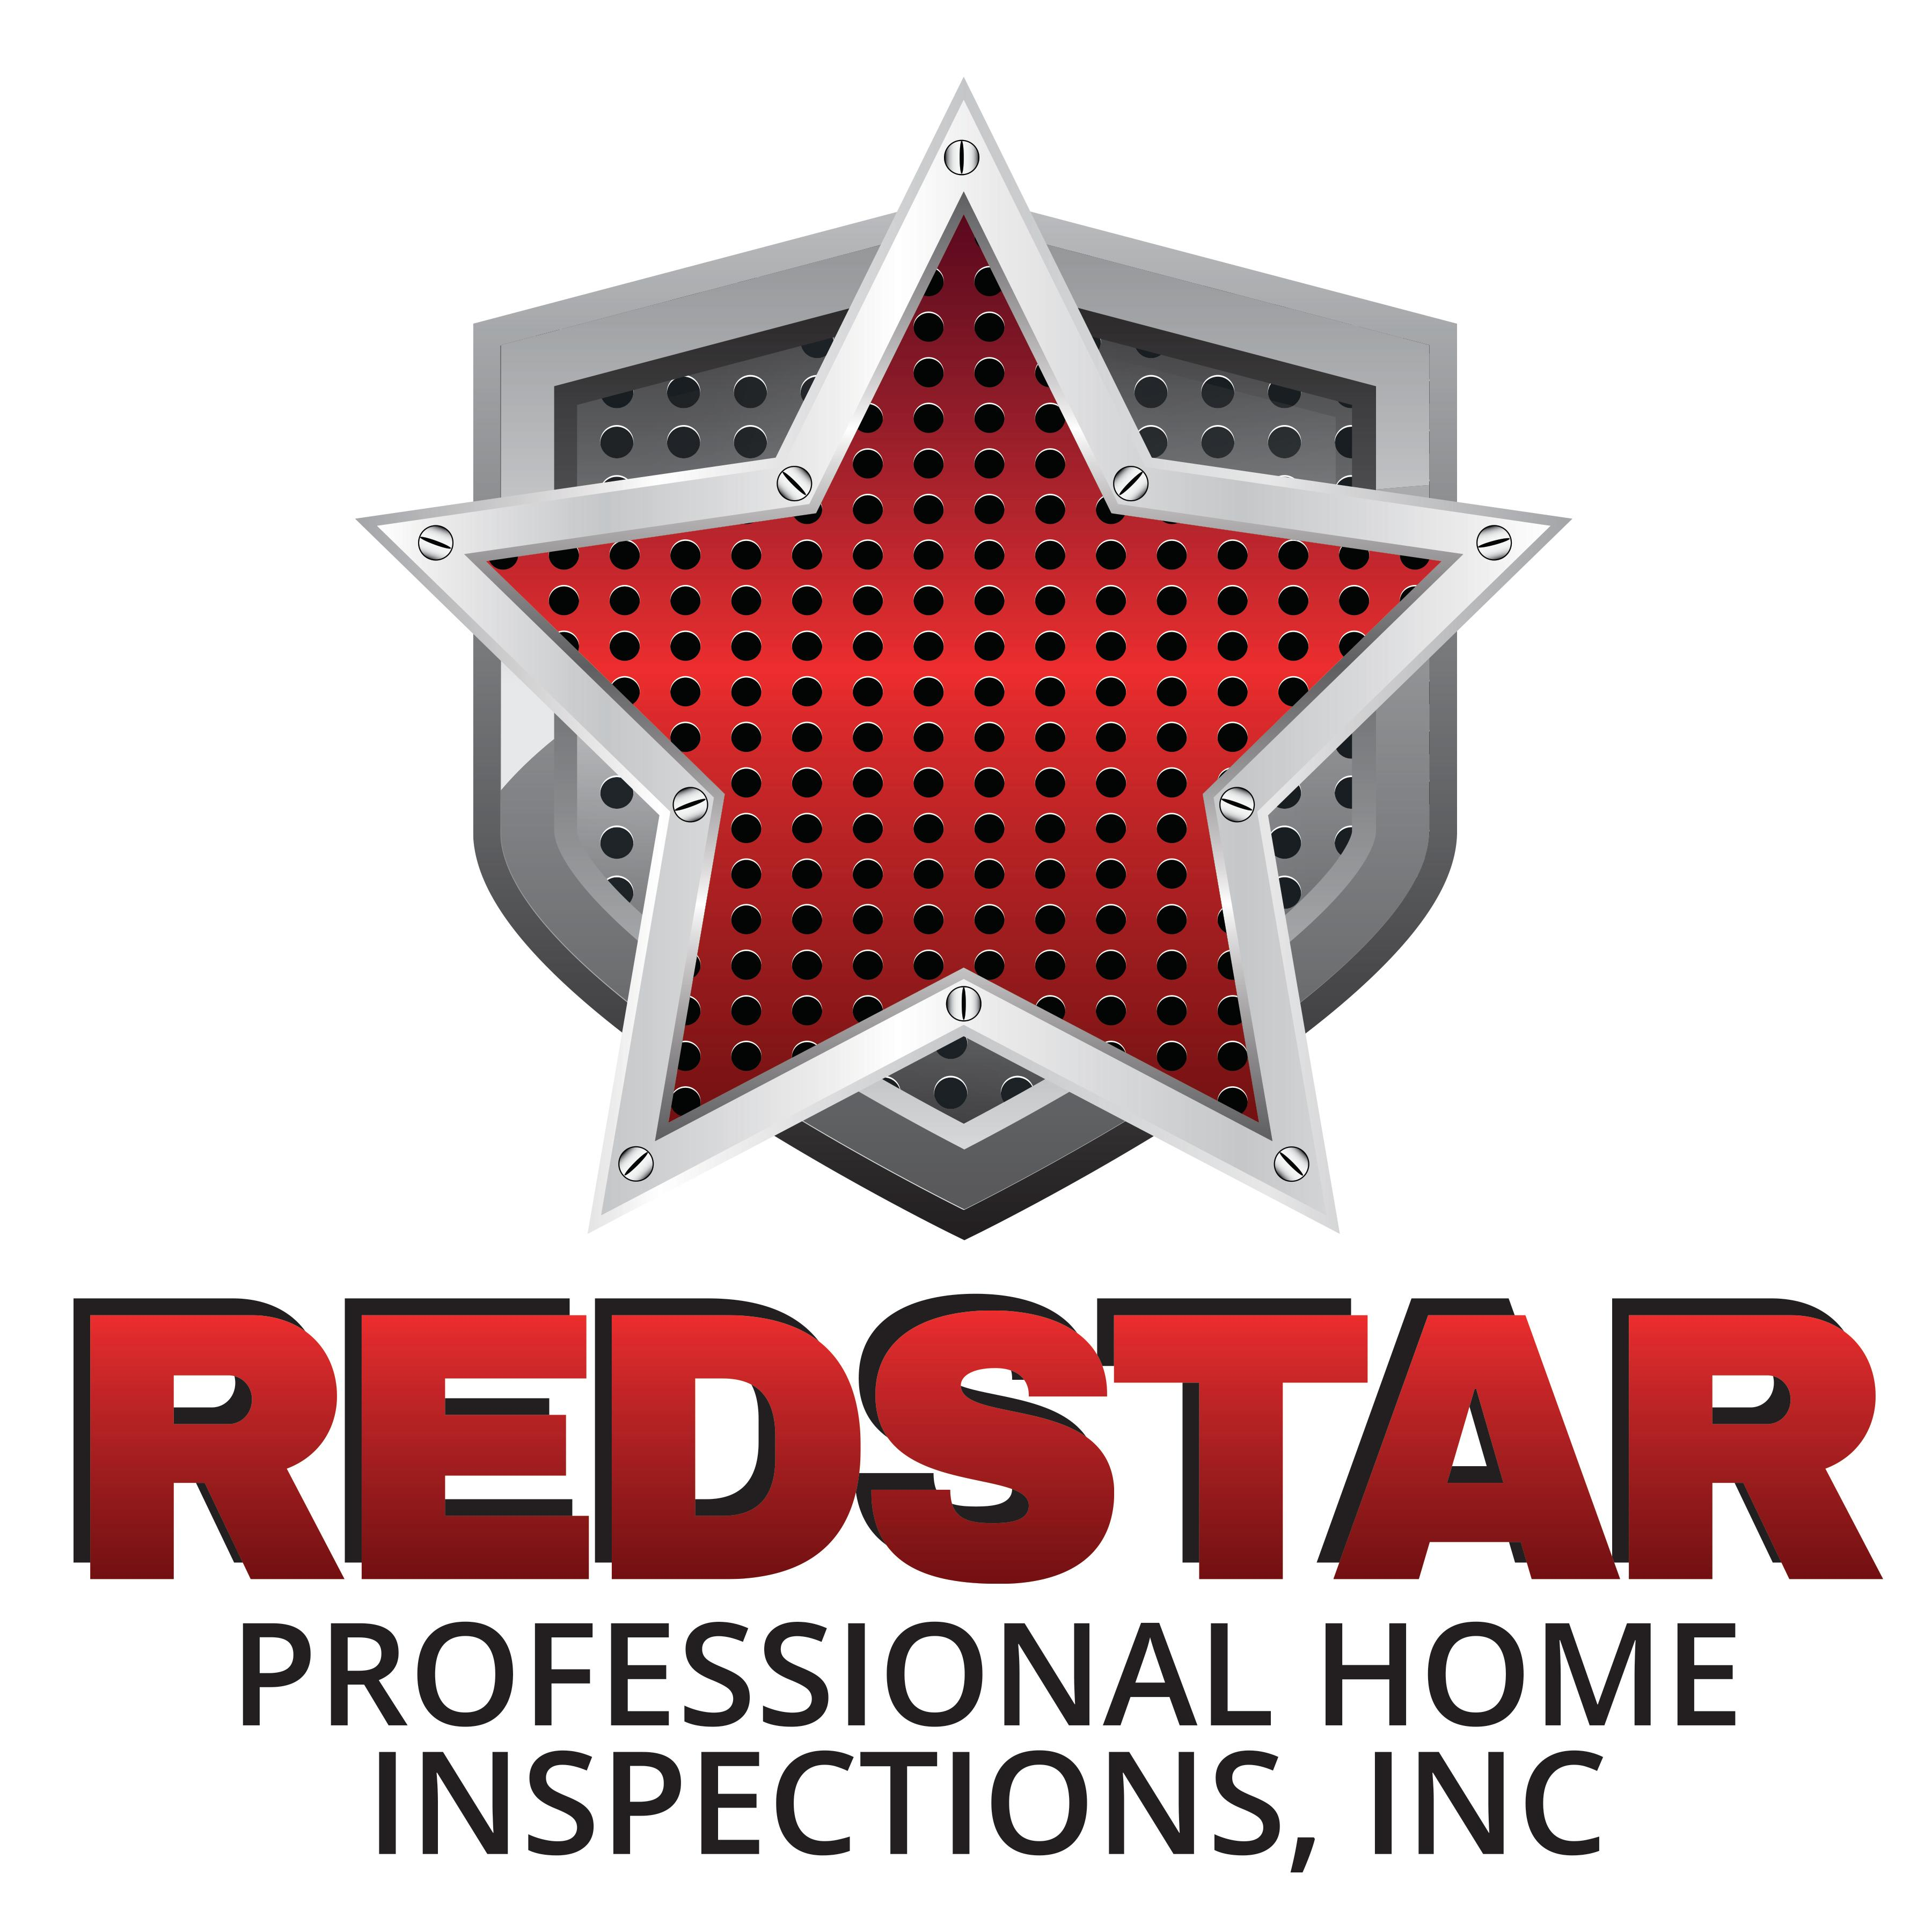 RedStar Professional Home Inspection, Inc